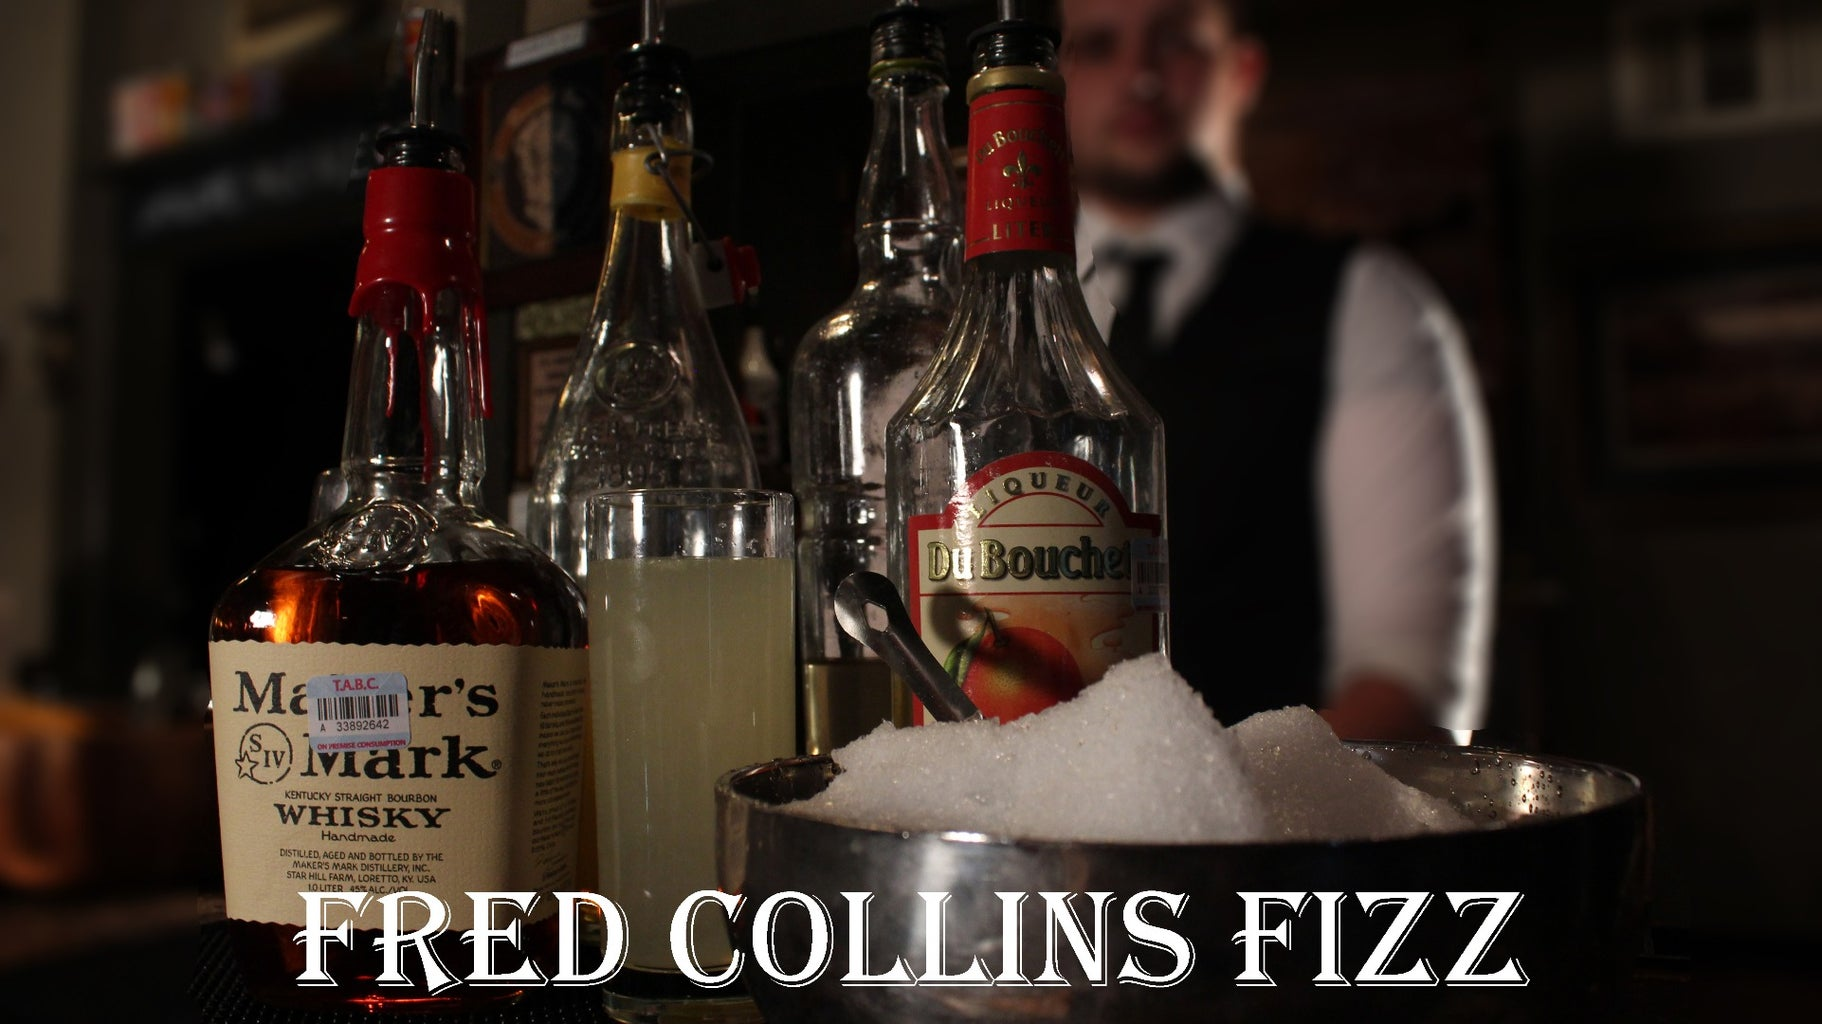 Fred Collins Fizz